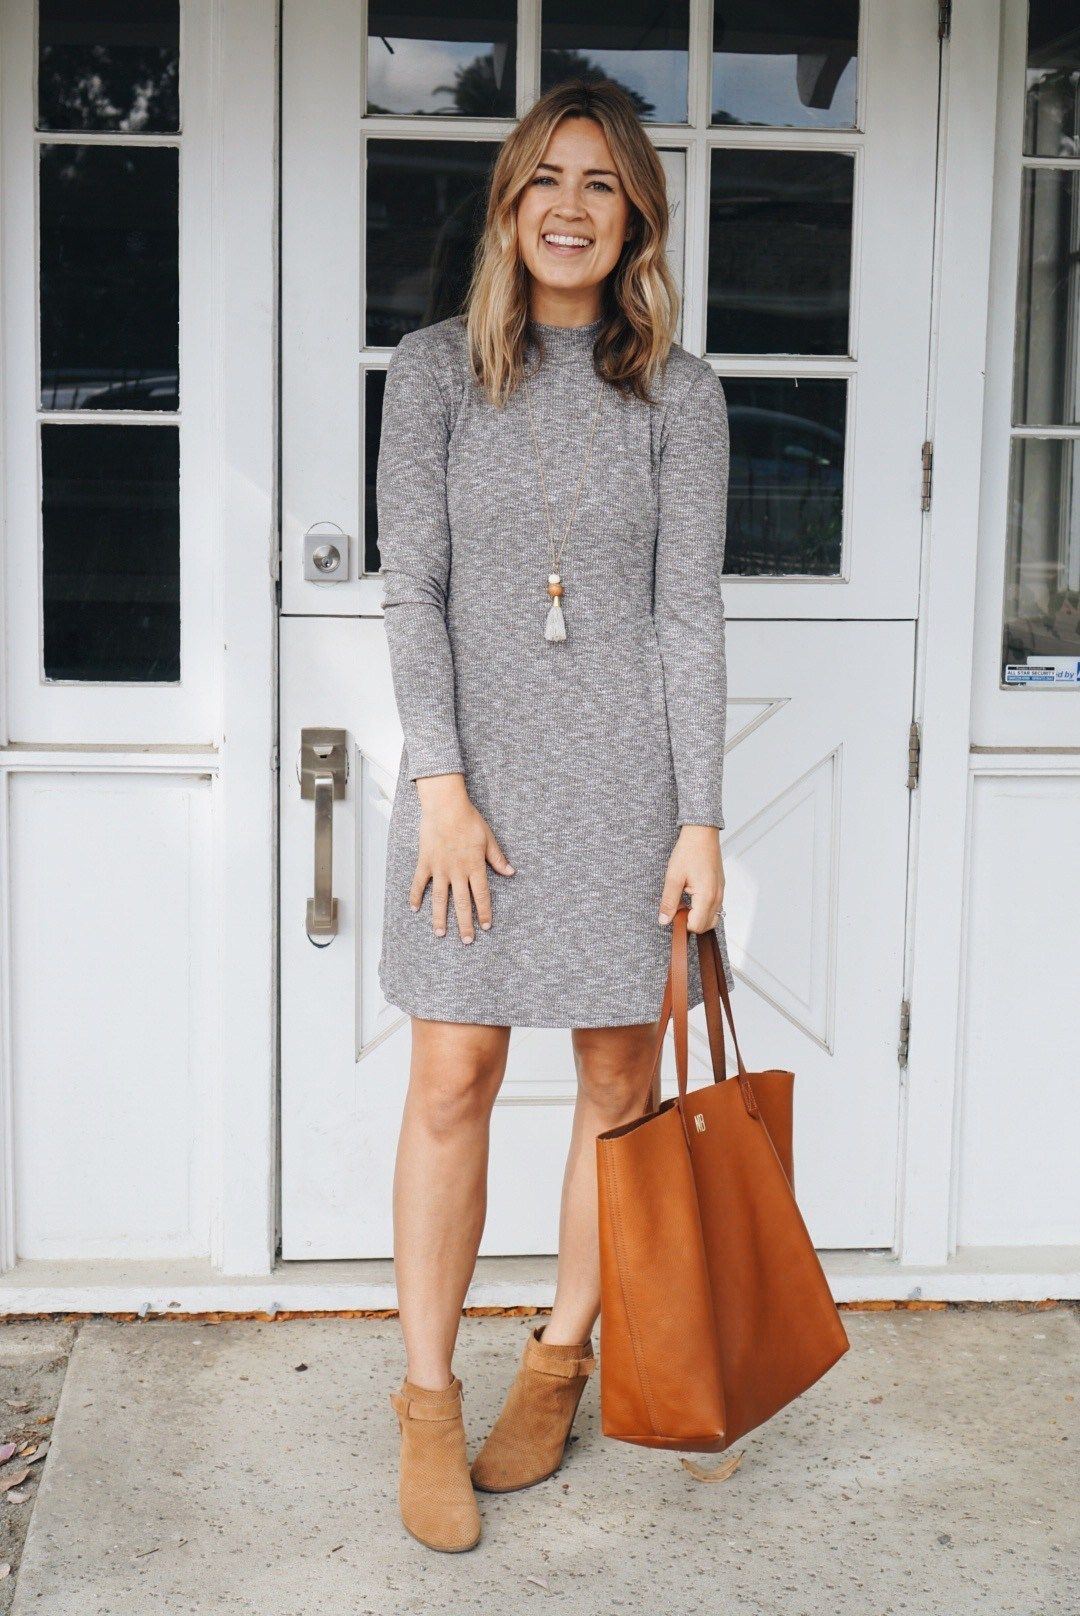 50 Stylish Back To School Outfits For Teachers You Will